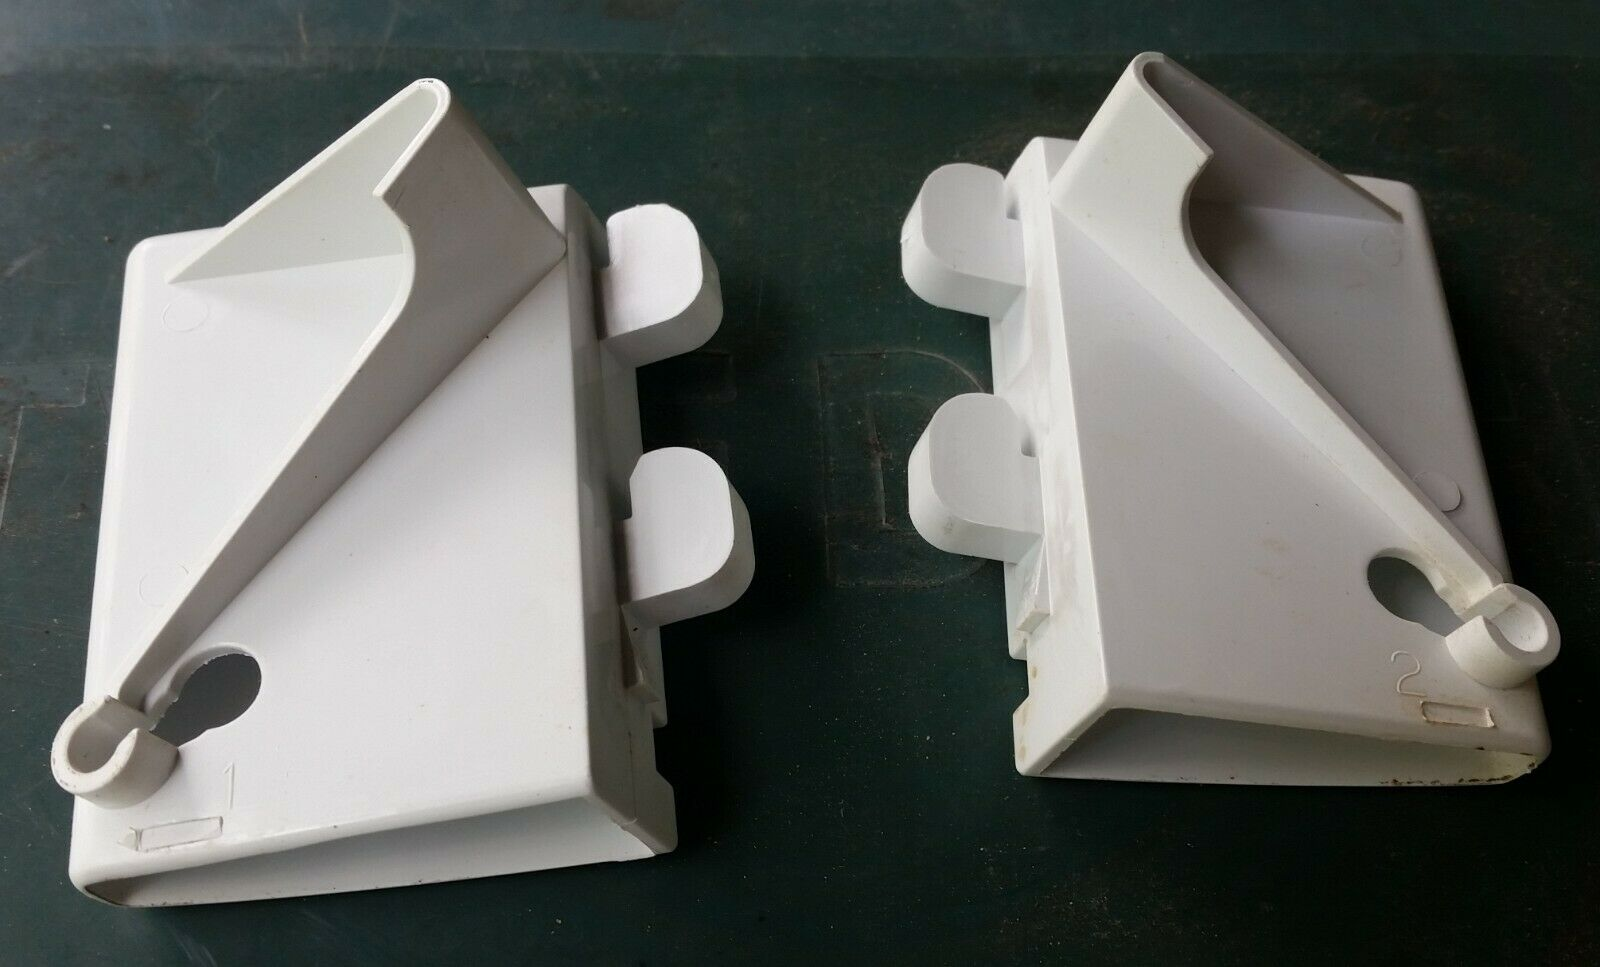 JENN-AIR Refrigerator Freezer Door Basket  STOP  Left & Right  Part # 61003753